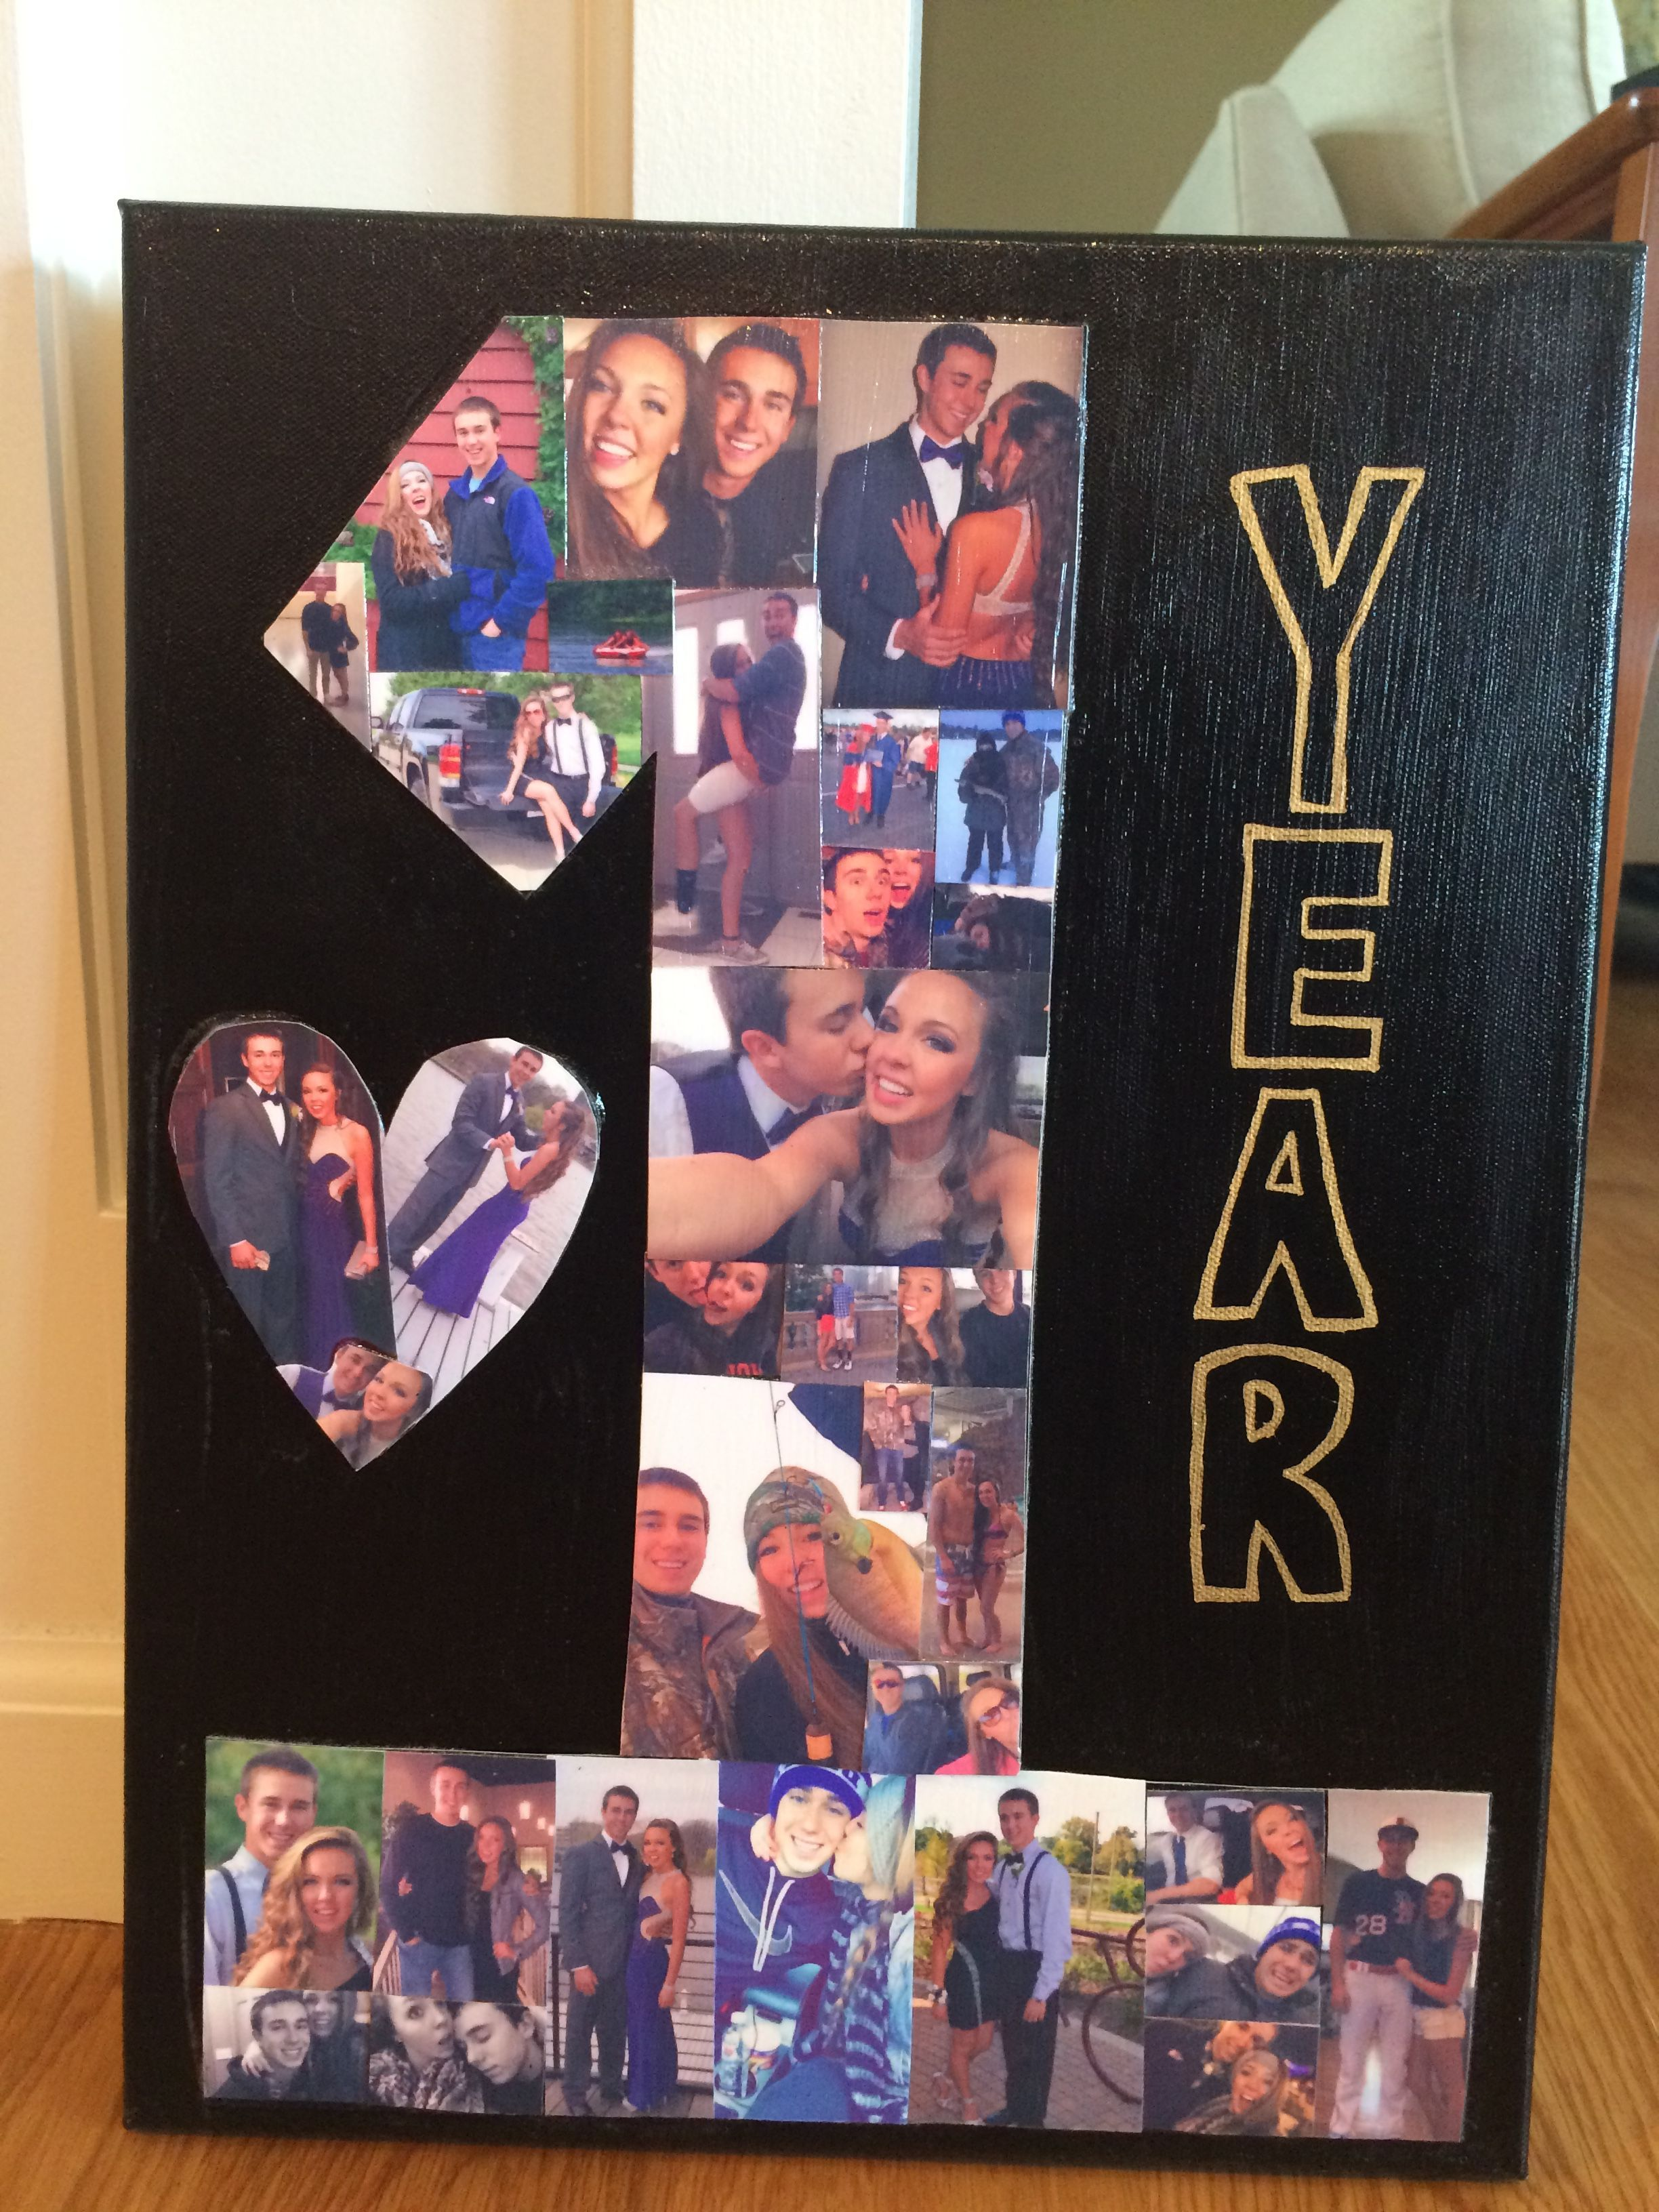 My Daughter Made This For Her Boyfriend For Their 1 Year Of Dating Using Canvas Pa Diy Anniversary Gift Diy Anniversary Gifts For Him 1 Year Anniversary Gifts